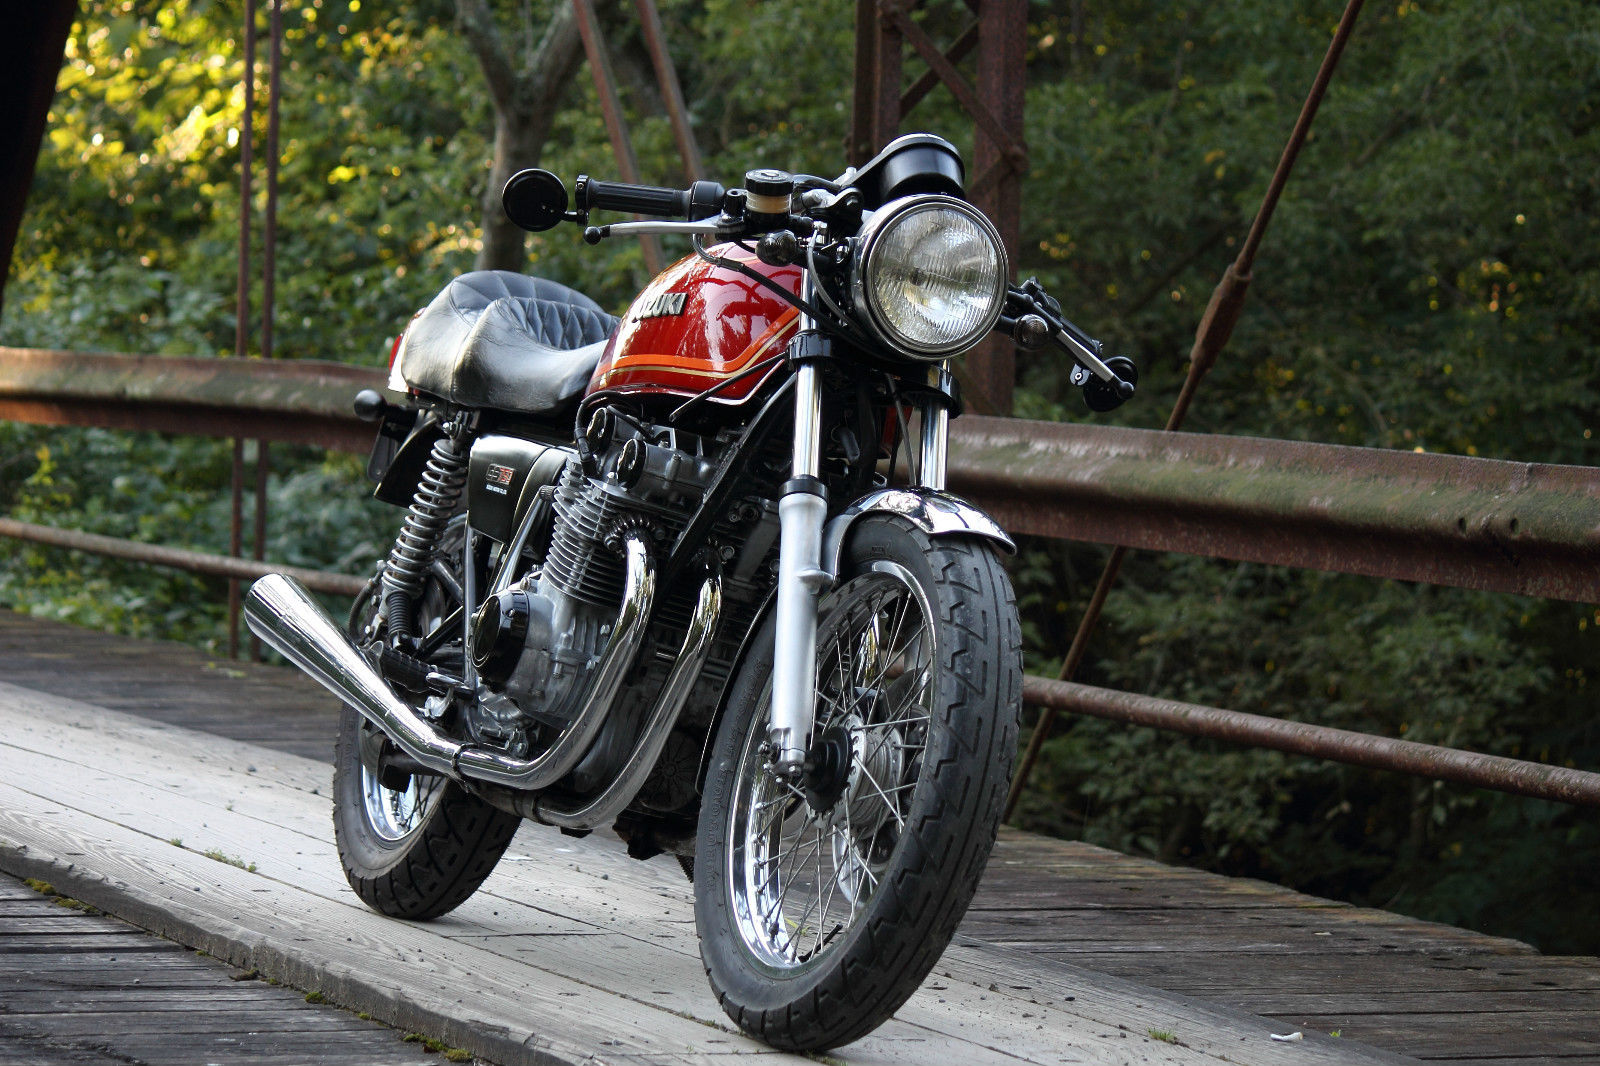 Suzuki Gs Cafe Racers For Sale on 1980 Suzuki Gs550 Cafe Racer